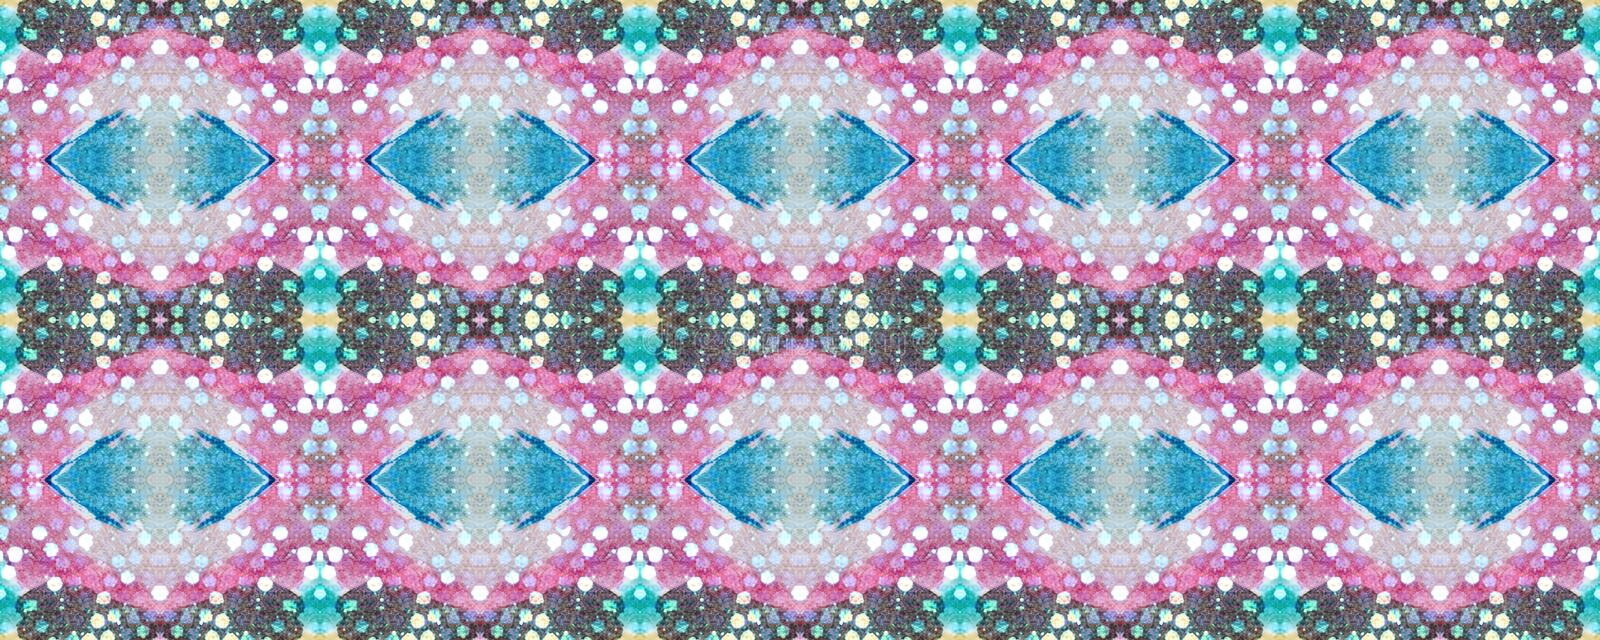 Ikat Seamless Pattern. Allover Organic Swimwear Design. Geo Ogee Tile.  Psychedelic Rainbow Watercolor Hand Drawn Textile. Creative Navajo Ikat Background royalty free stock photo